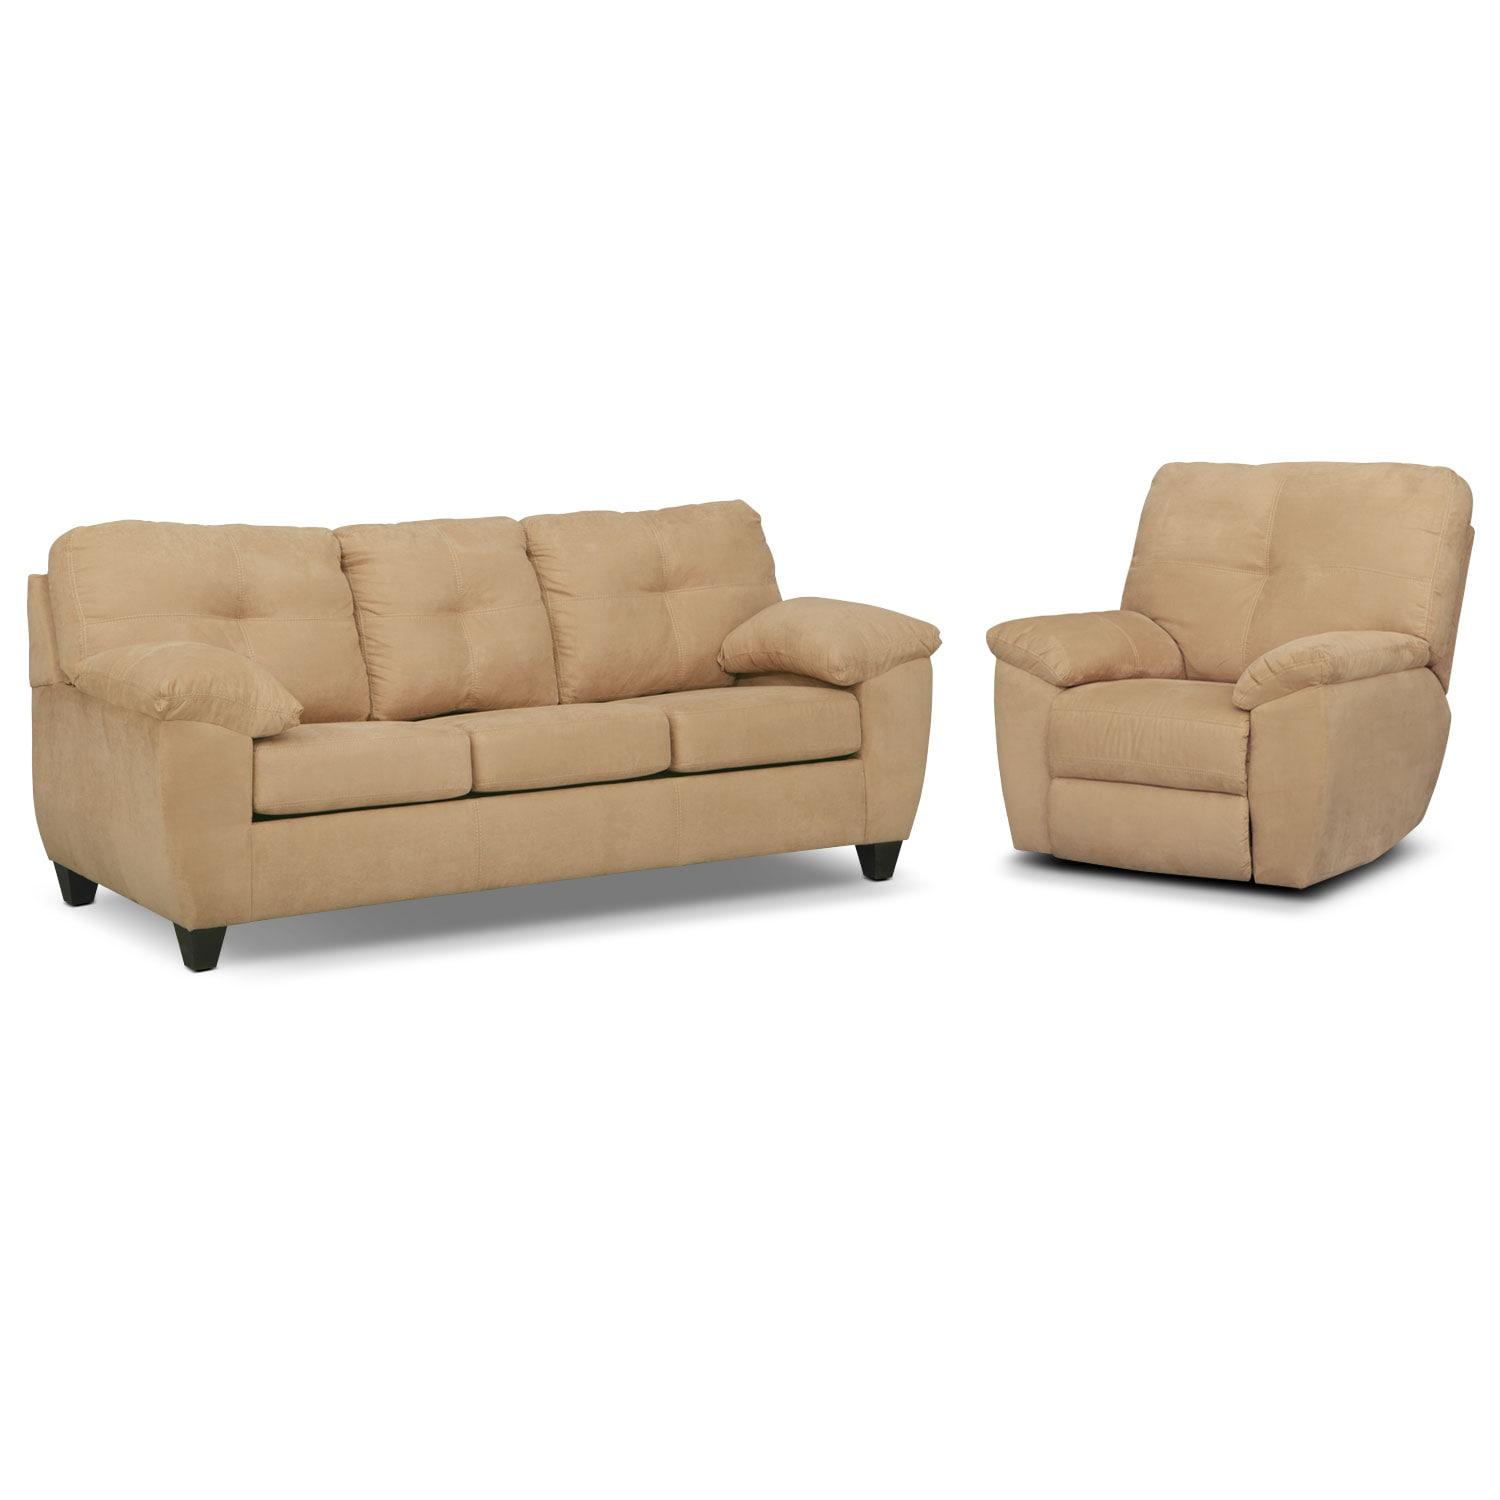 Living Room Furniture - Rialto Camel 2 Pc. Living Room w/ Glider Recliner